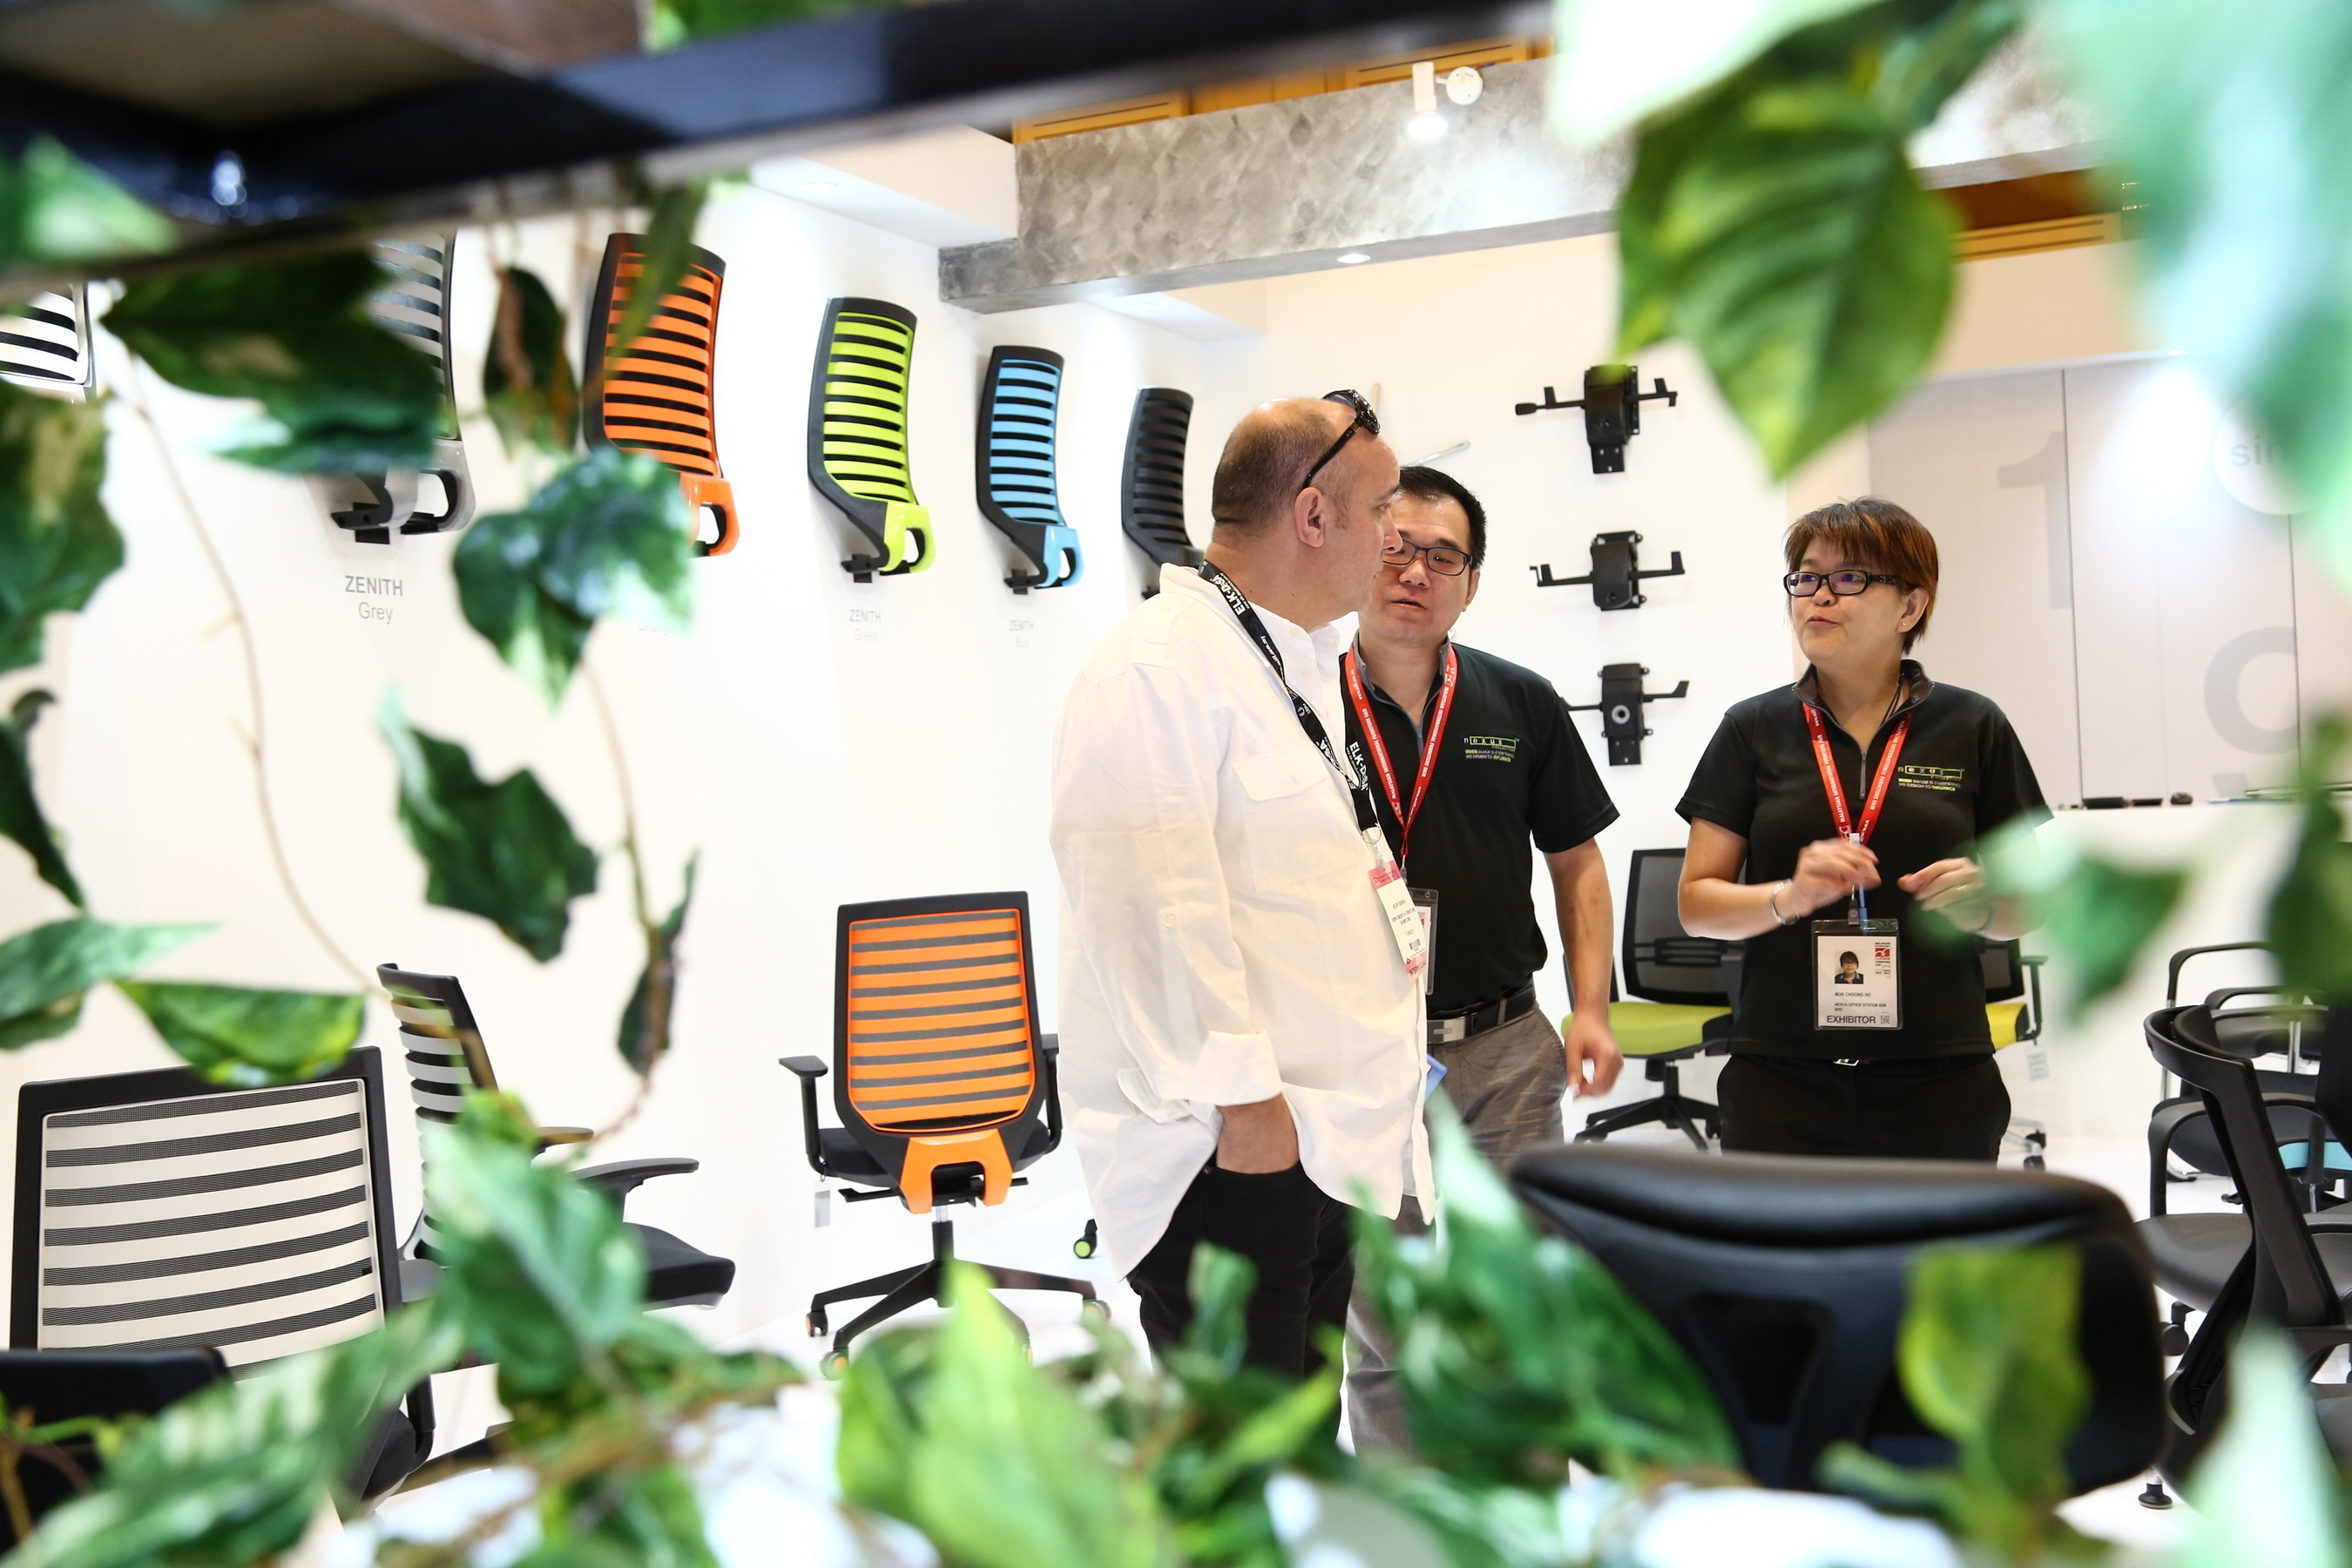 MIFF 2017 launches MIFF OFFICE to highlight its office furniture section